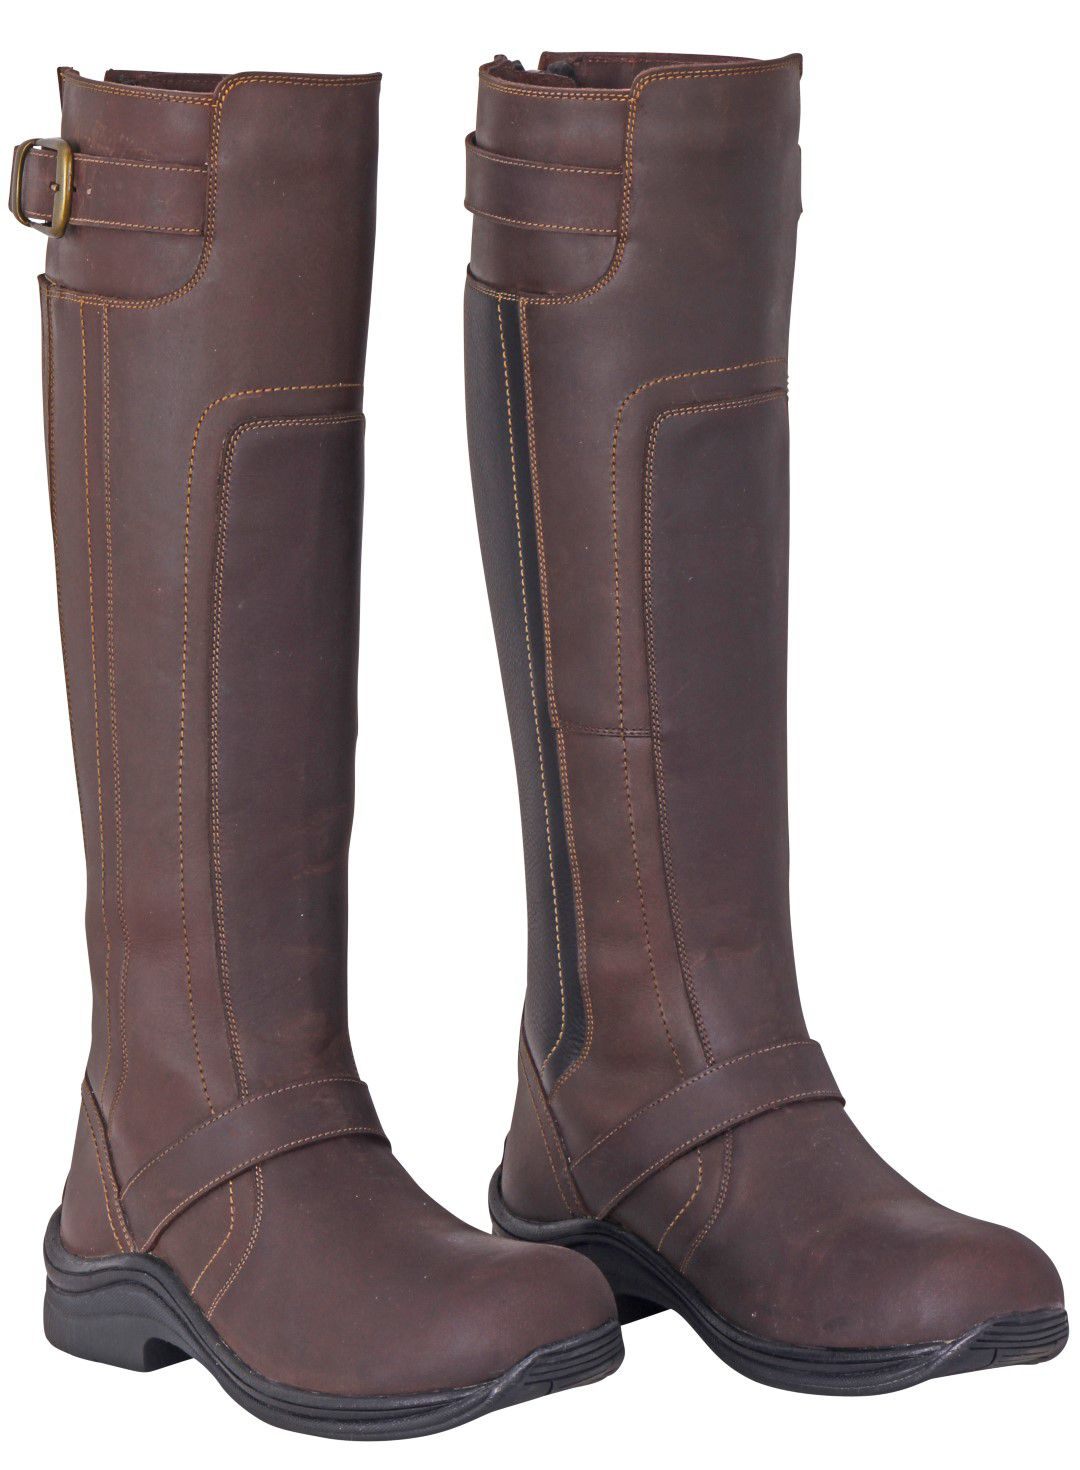 Cavallino Casual Long Riding Boots